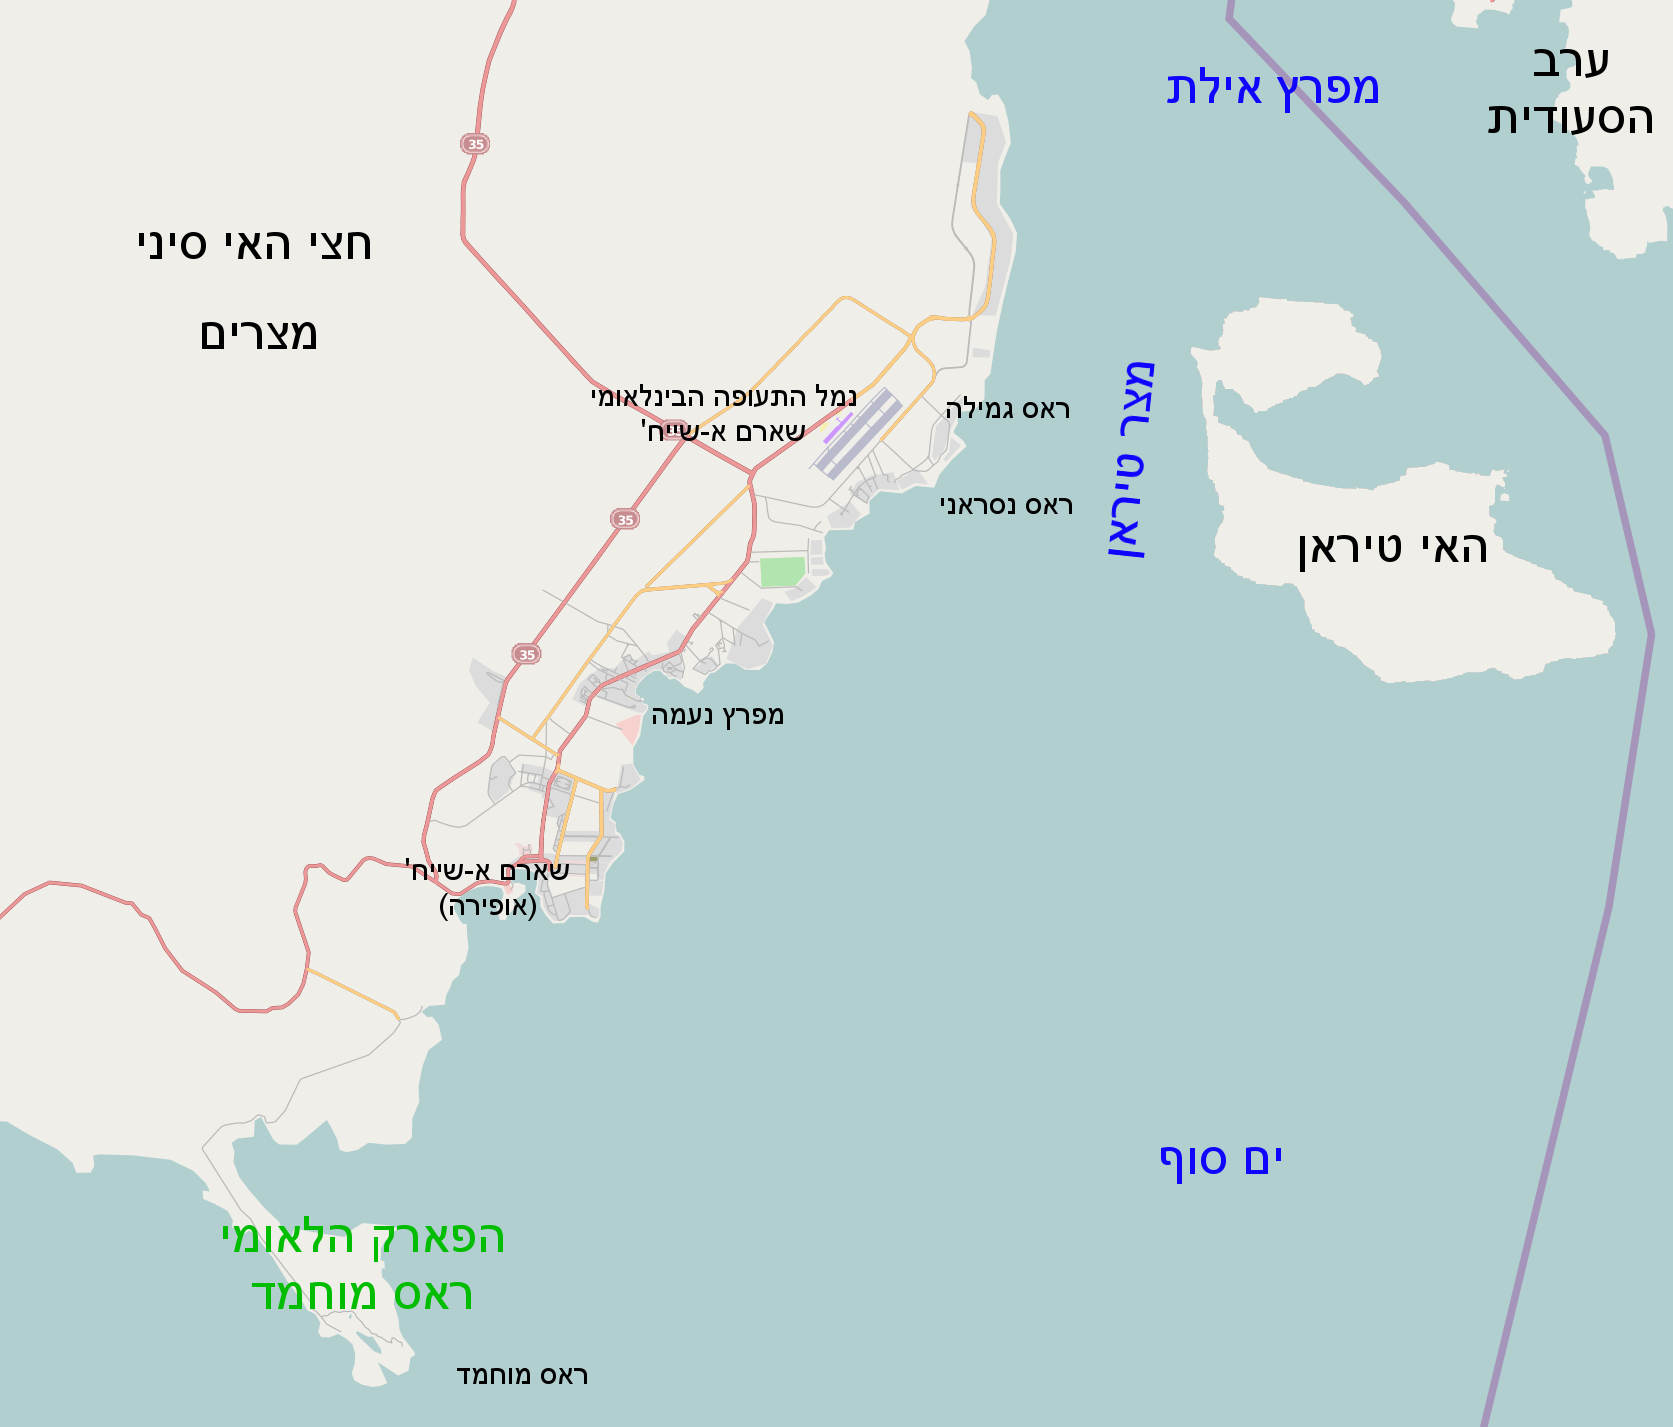 File:Sharm el Sheikh map OSM.png - Wikimedia Commons